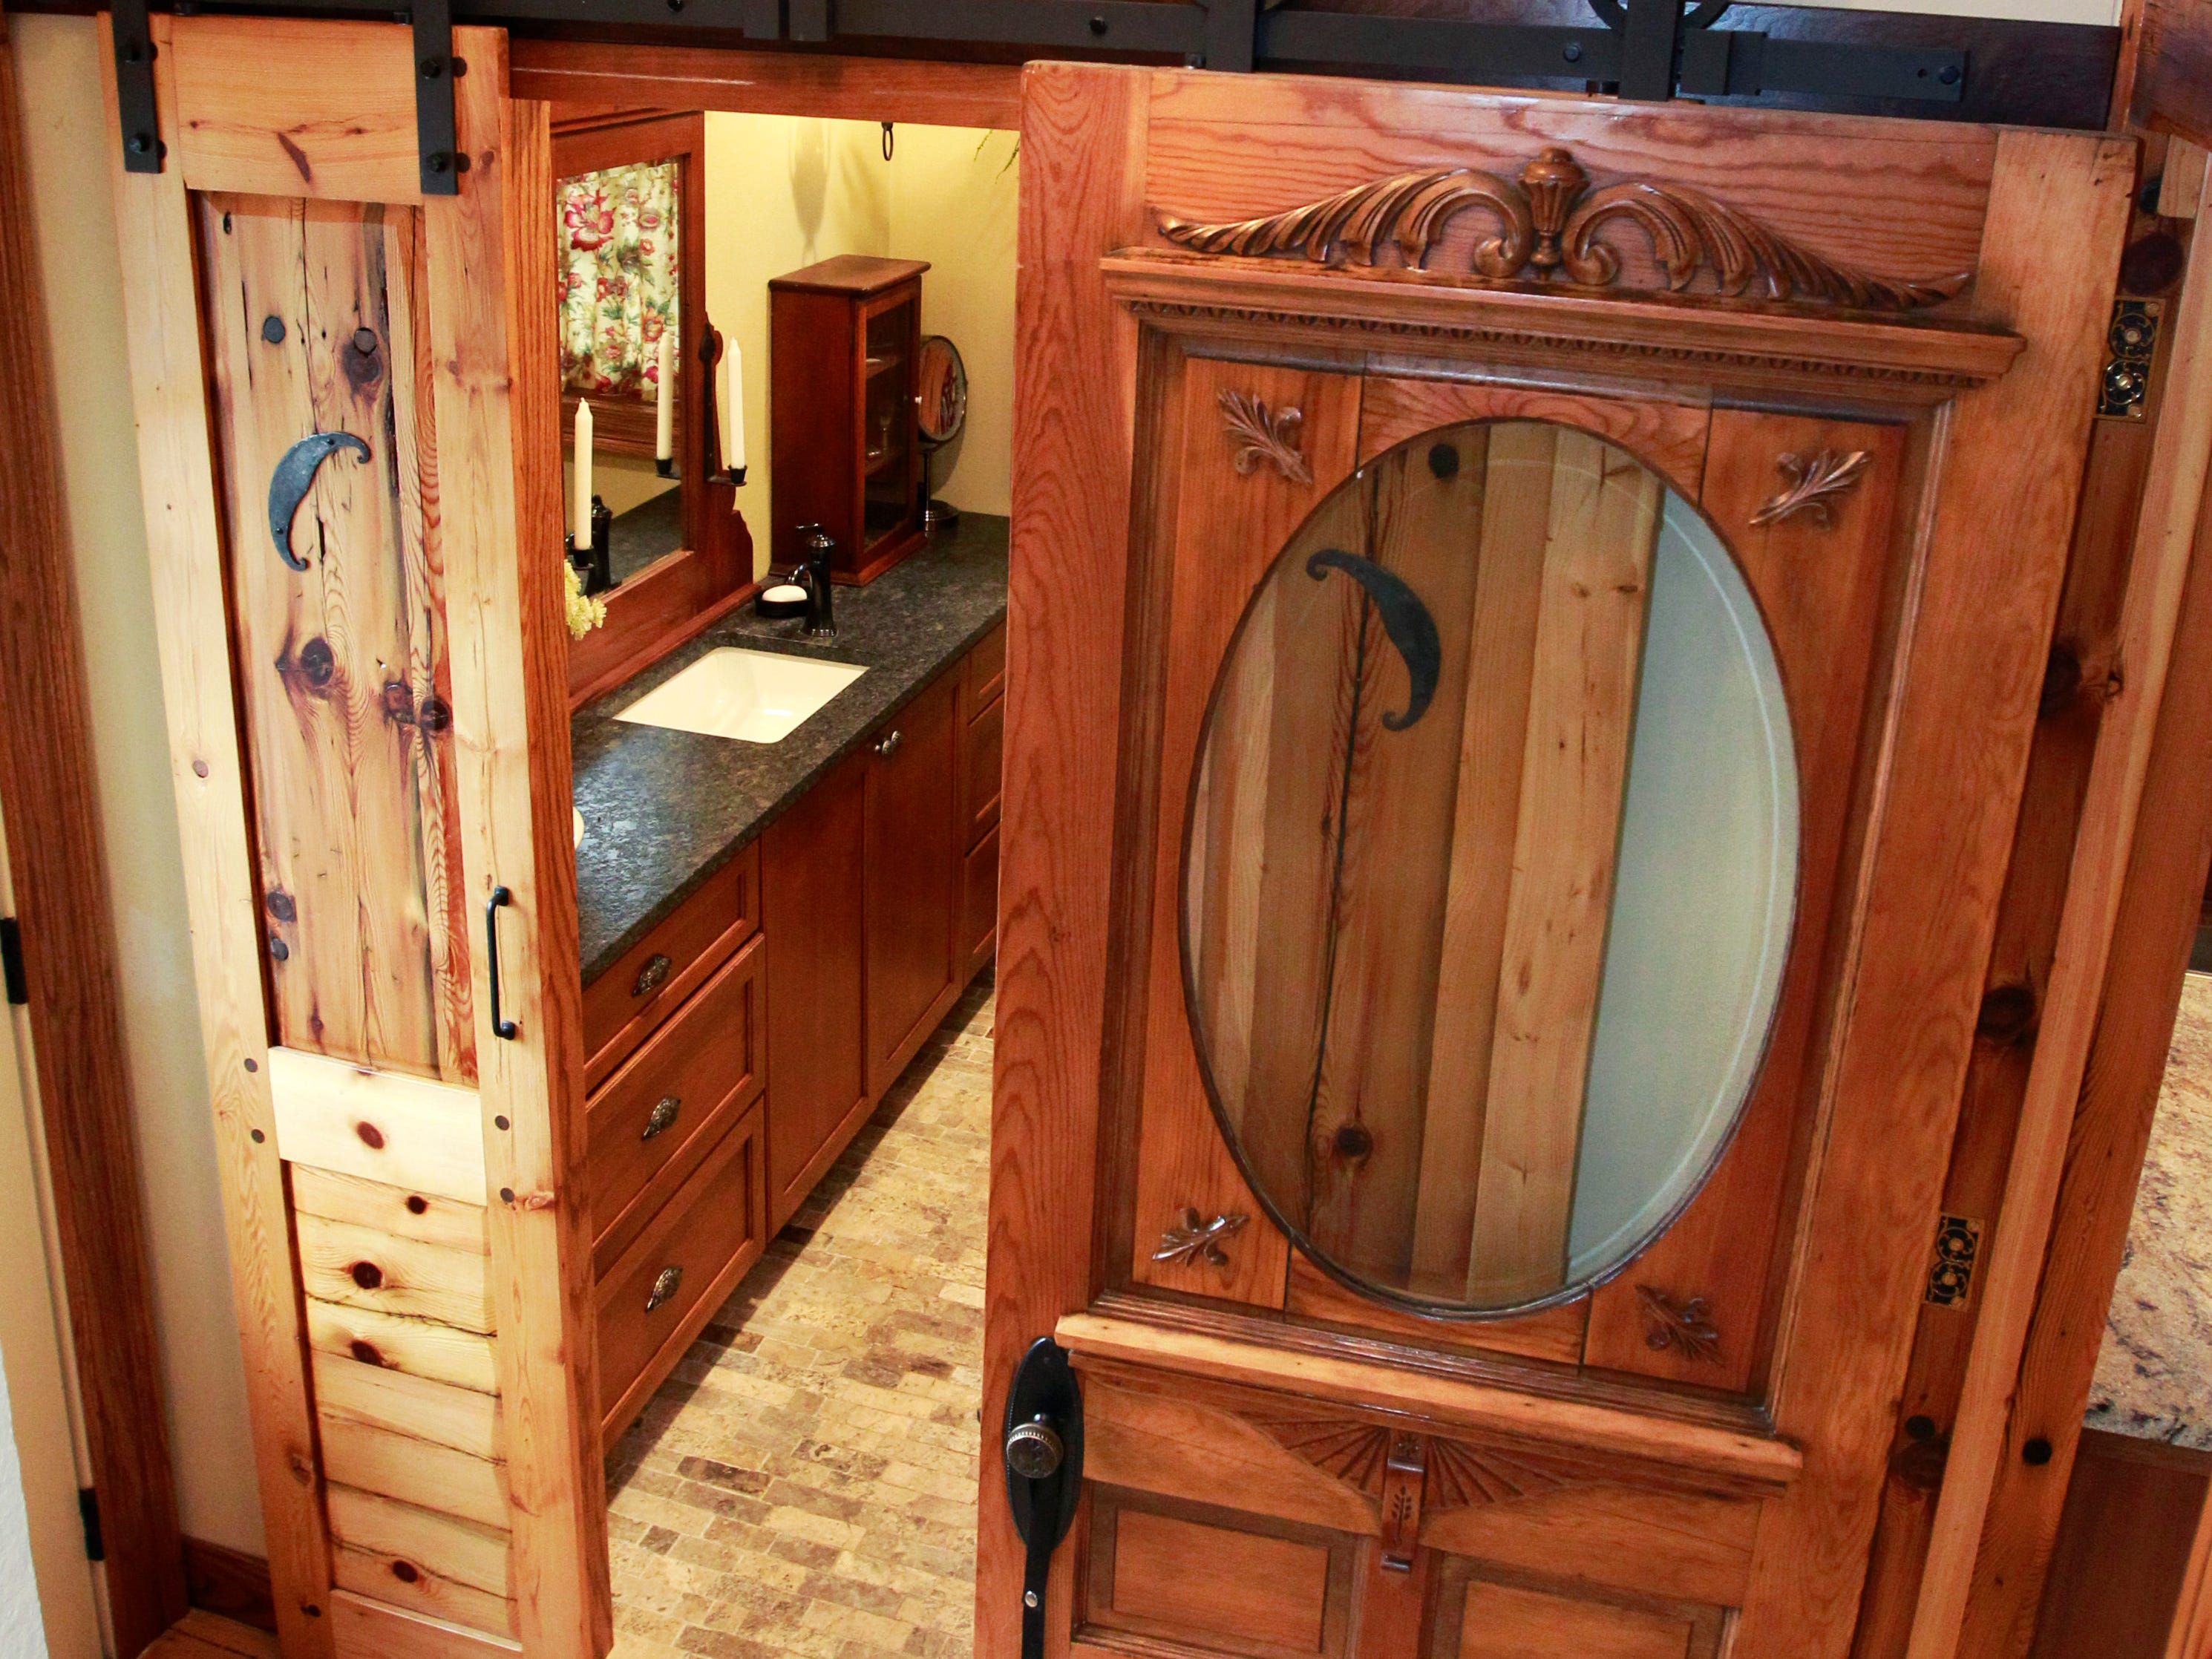 An Eastlake Victorian door (right) is seen along with a barn door leading into the downstairs bathroom.